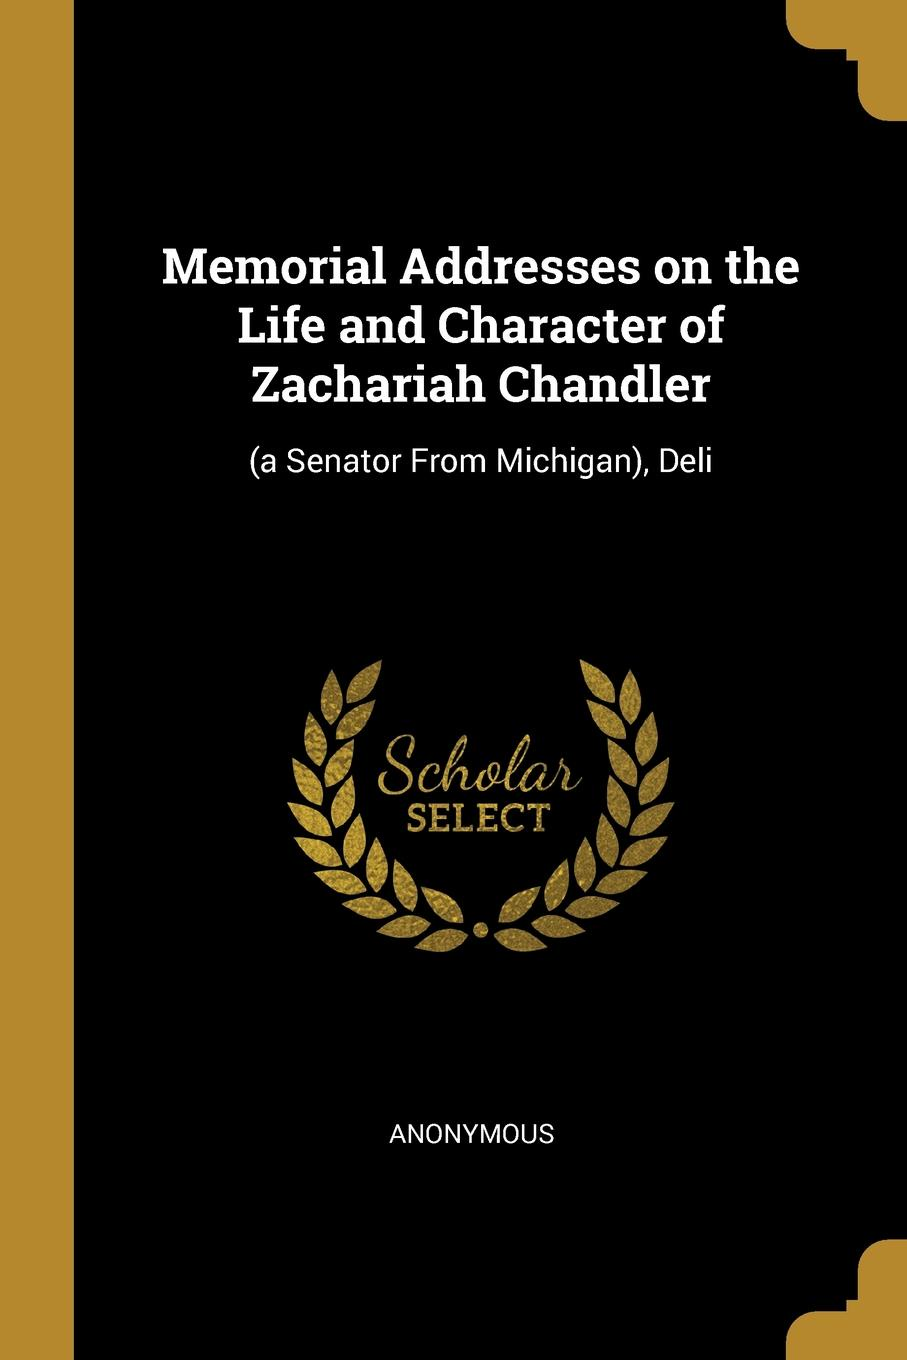 Memorial Addresses on the Life and Character of Zachariah Chandler. (a Senator From Michigan), Deli